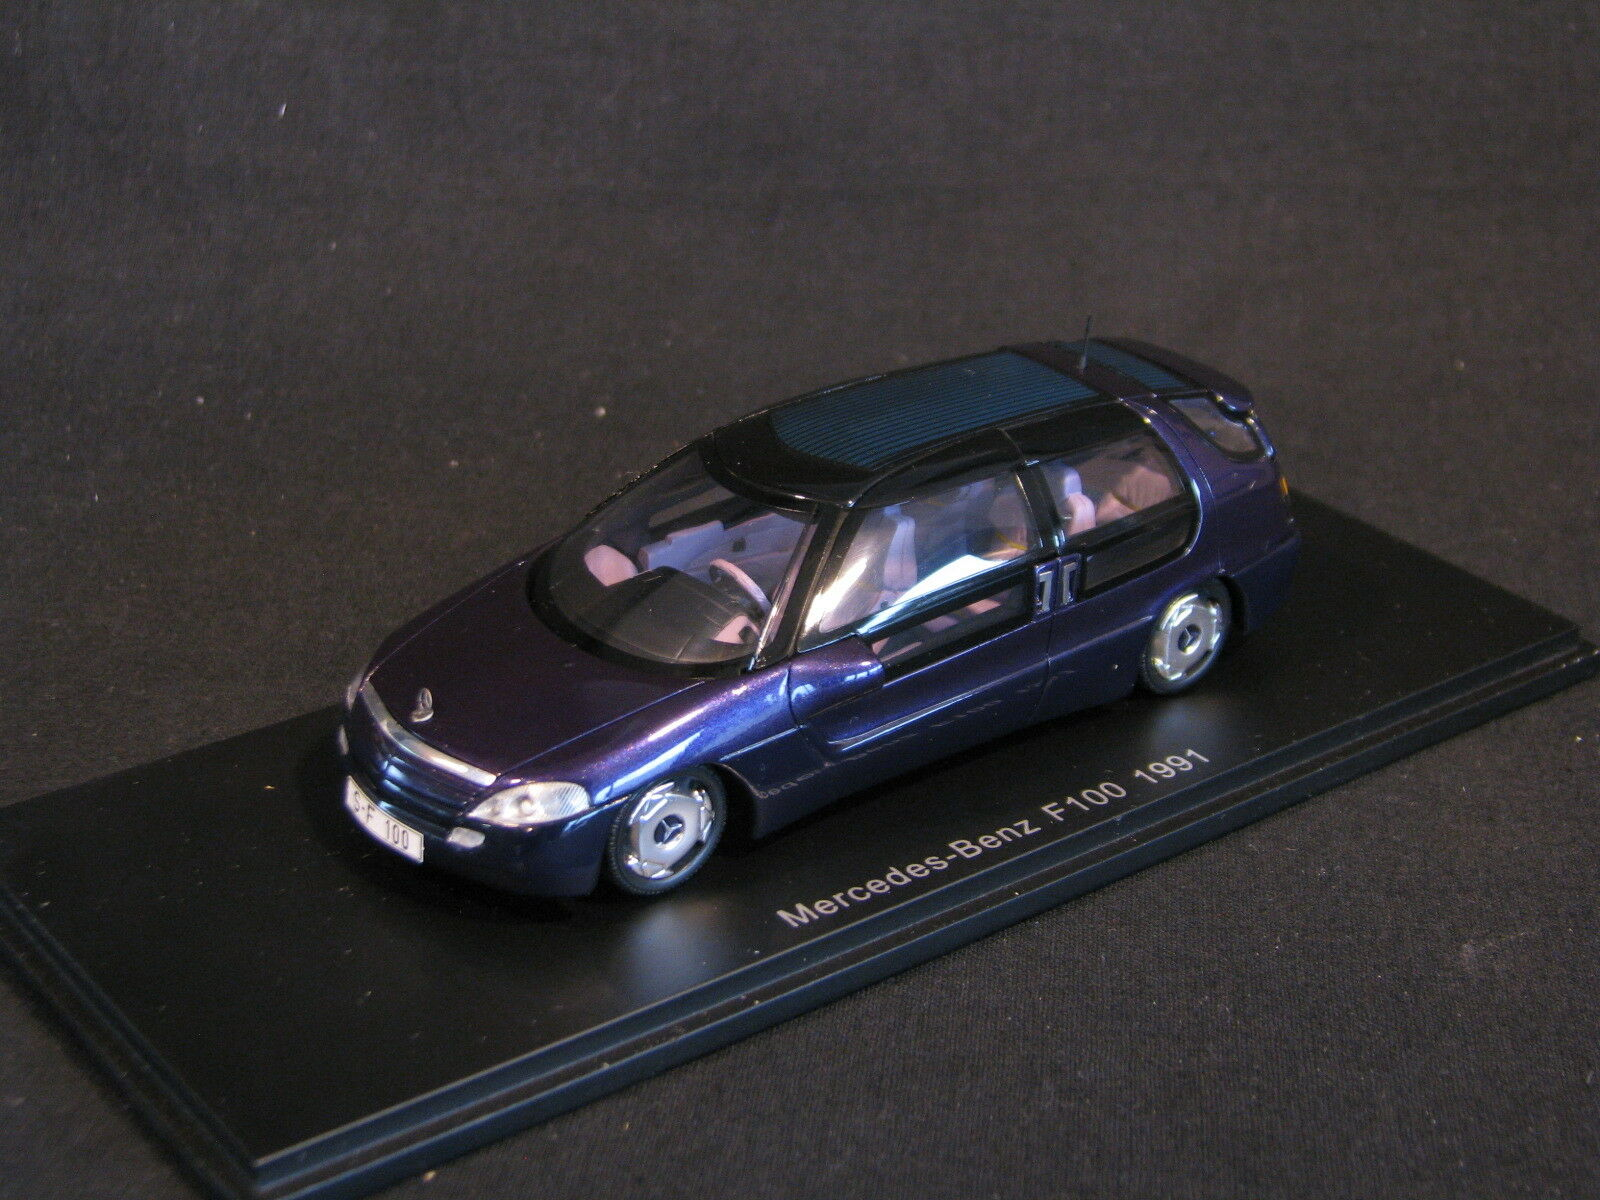 Spark Mercedes-Benz F100 1991 Concept Car 1 43 Metallic Purple (JS)